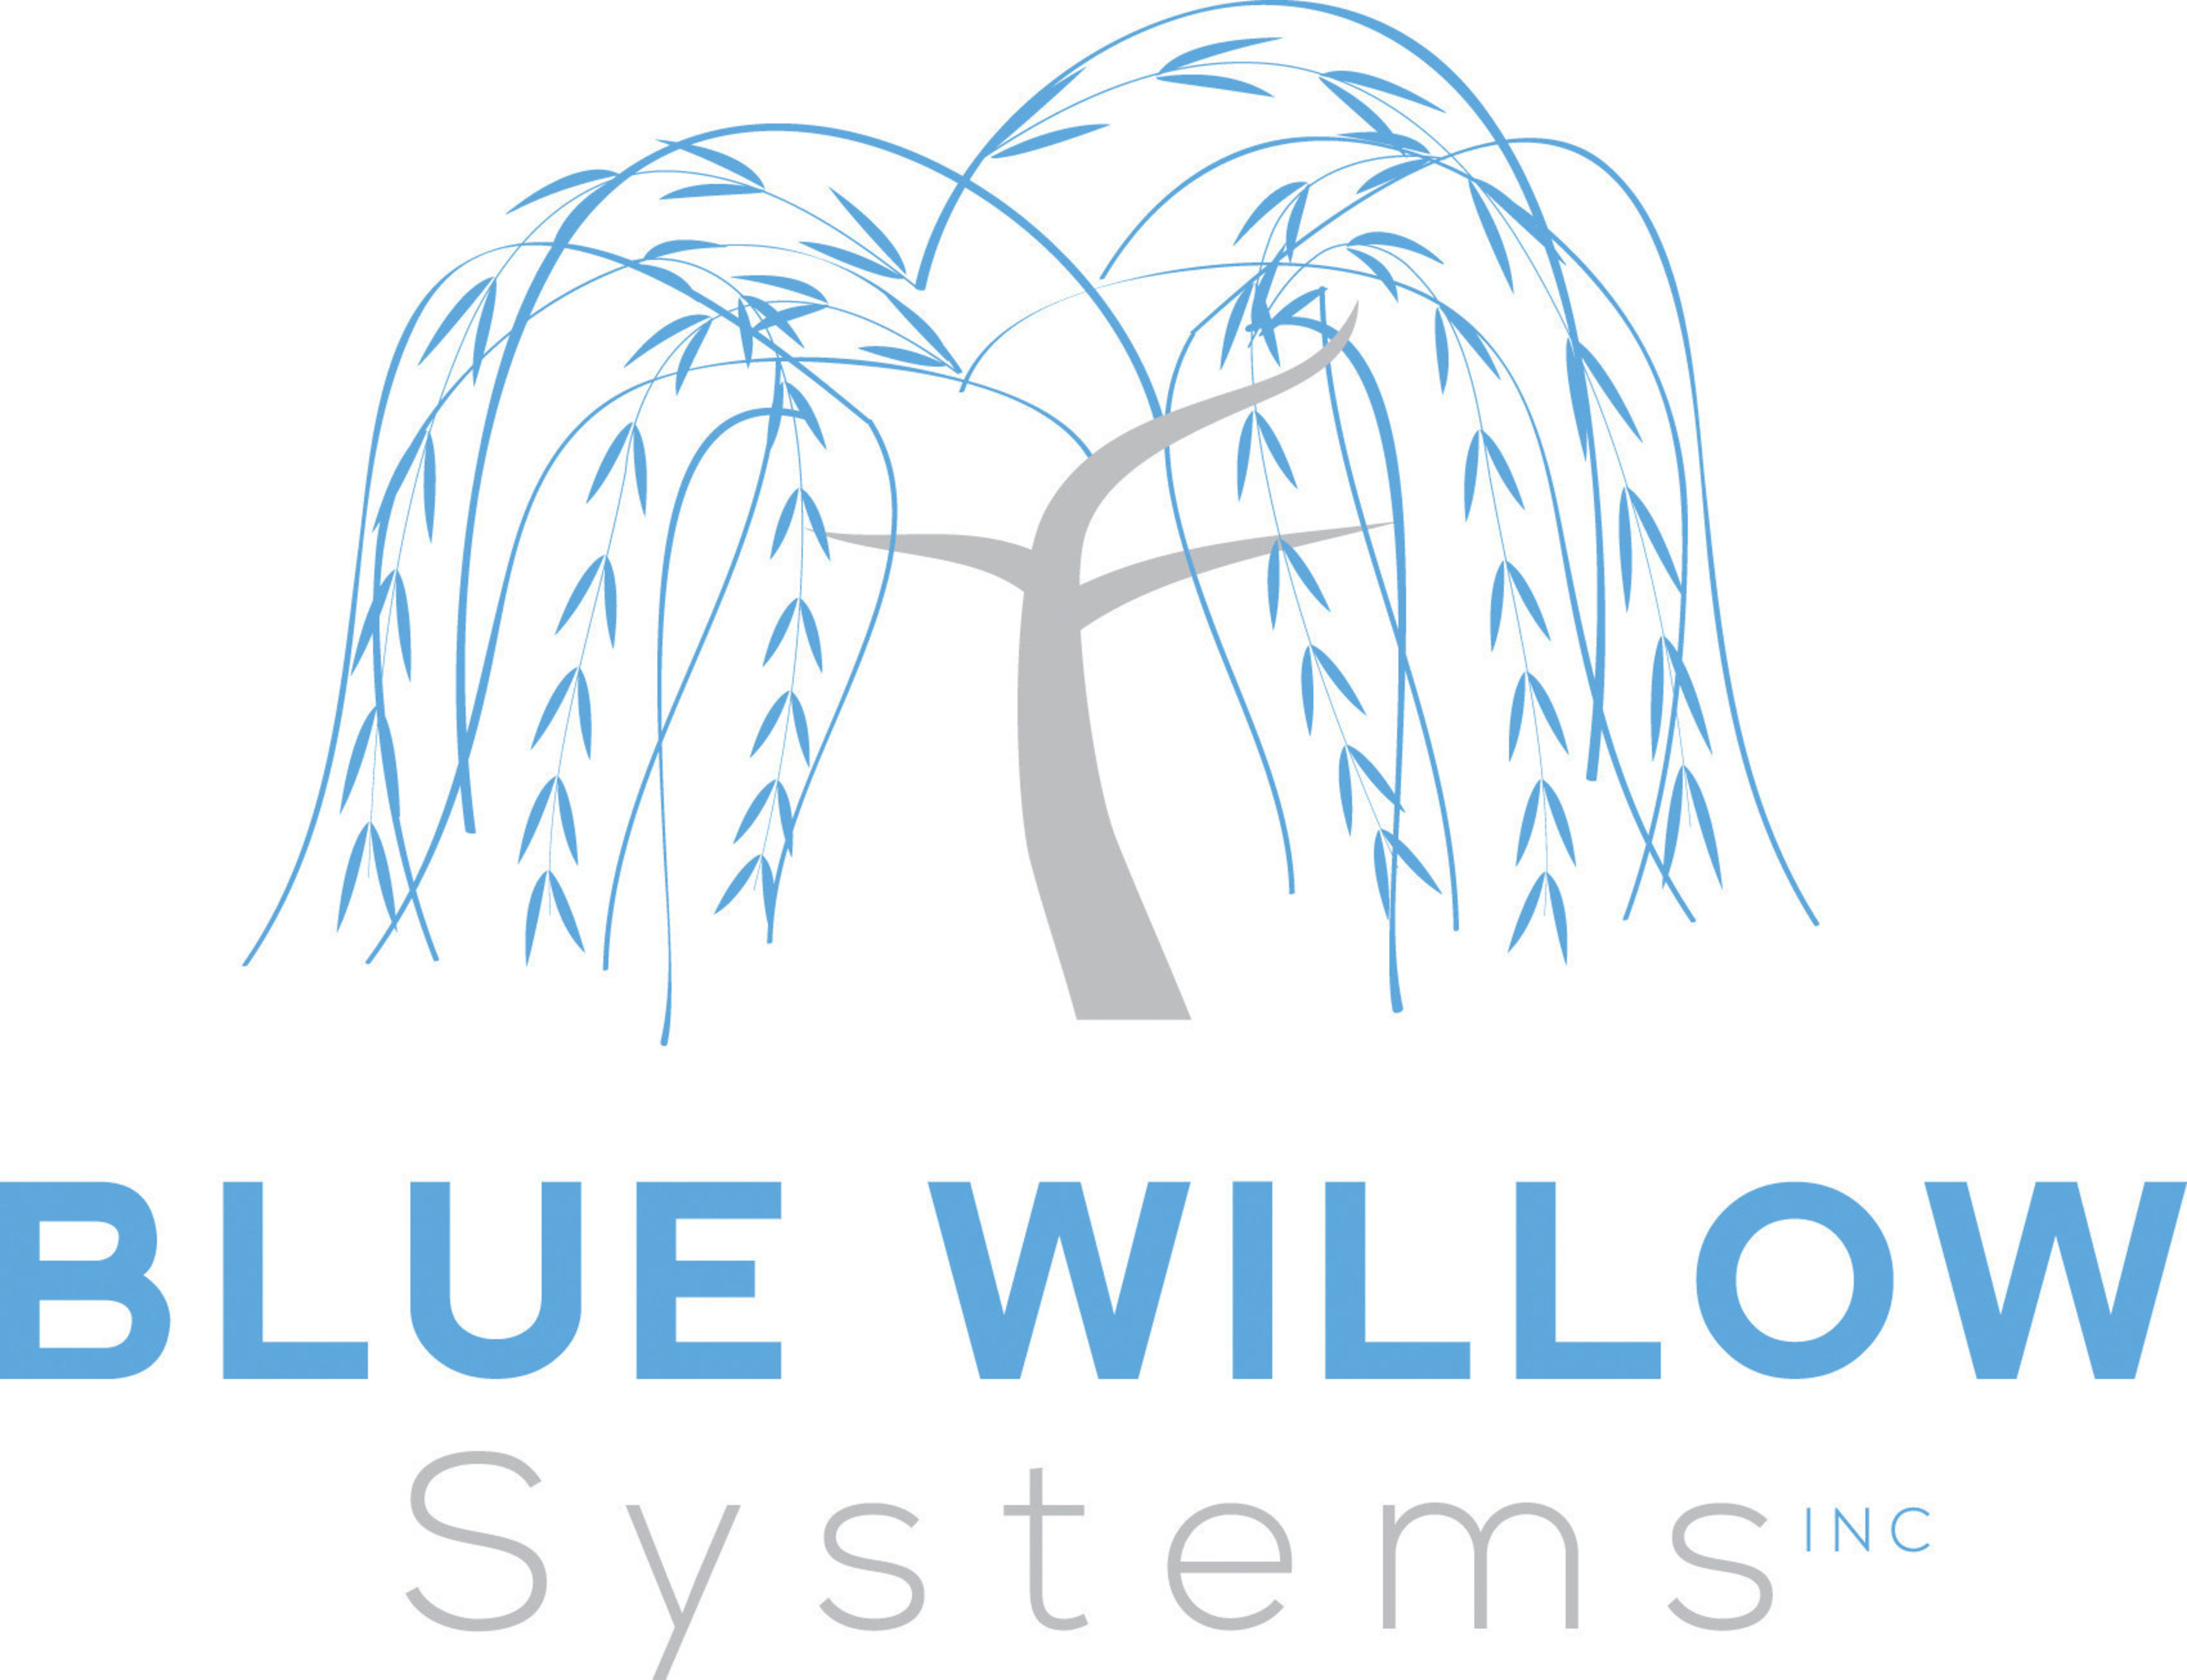 Blue Willow Systems Highlights Innovative Wearable Technology for Elders